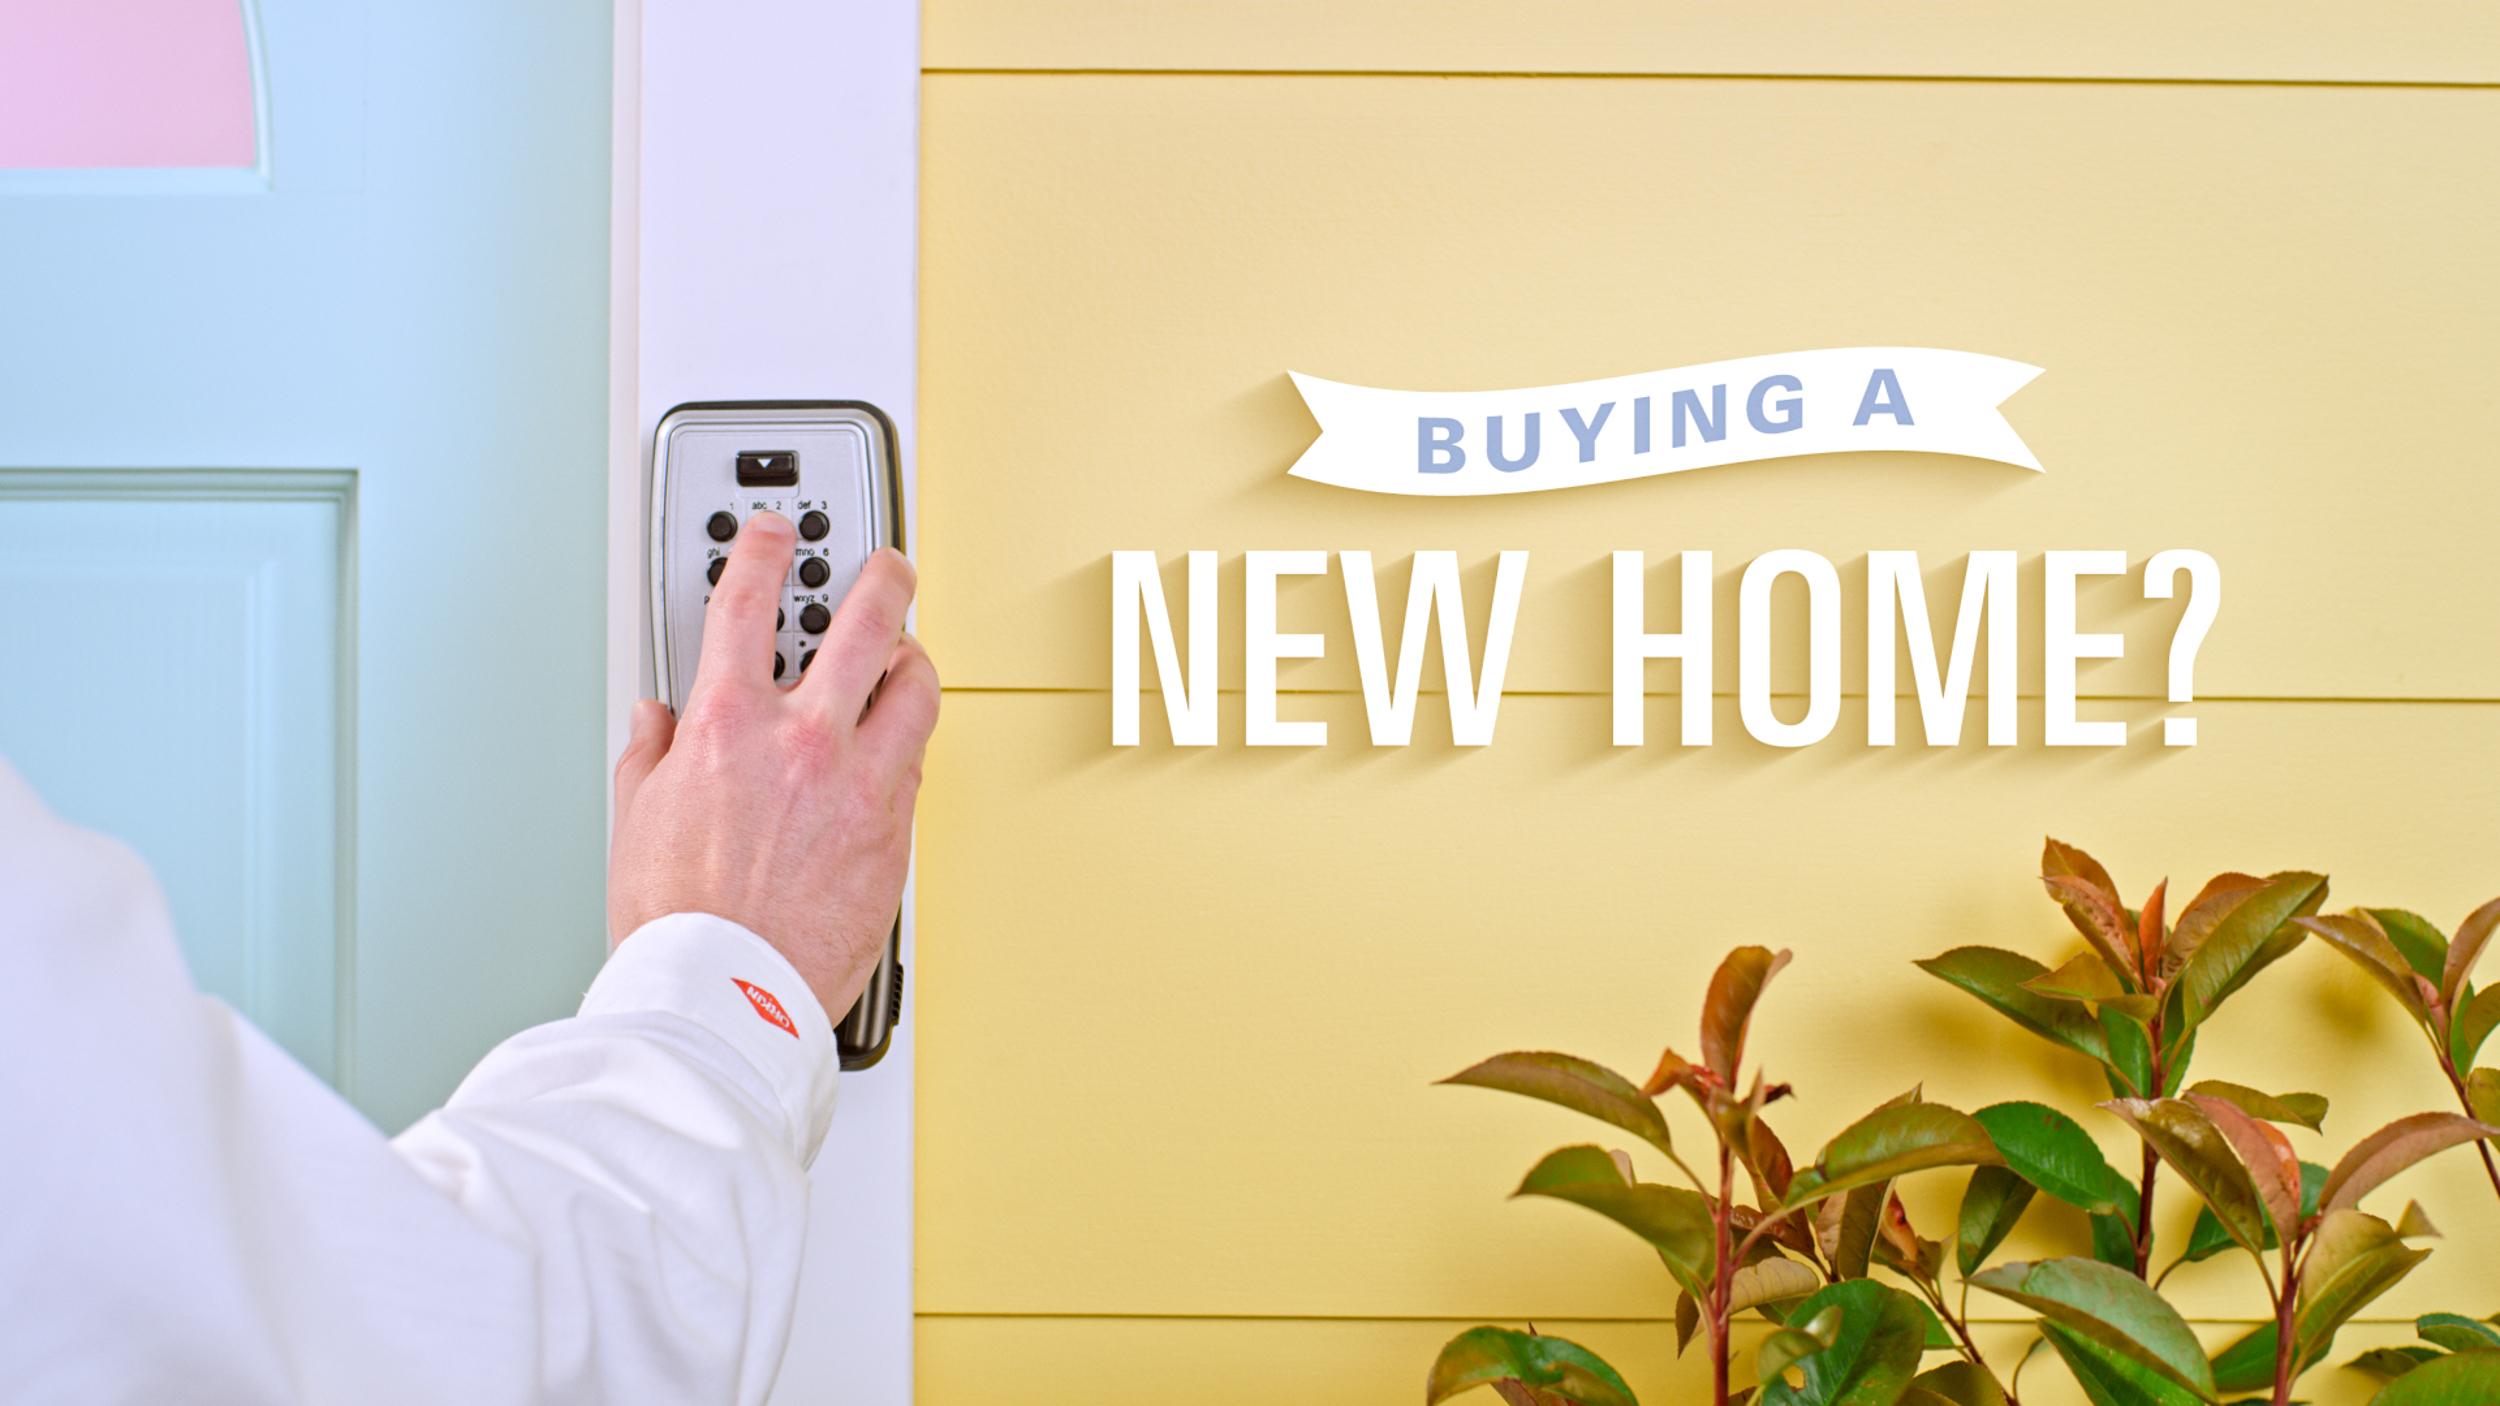 Home_Buyers_003.jpg